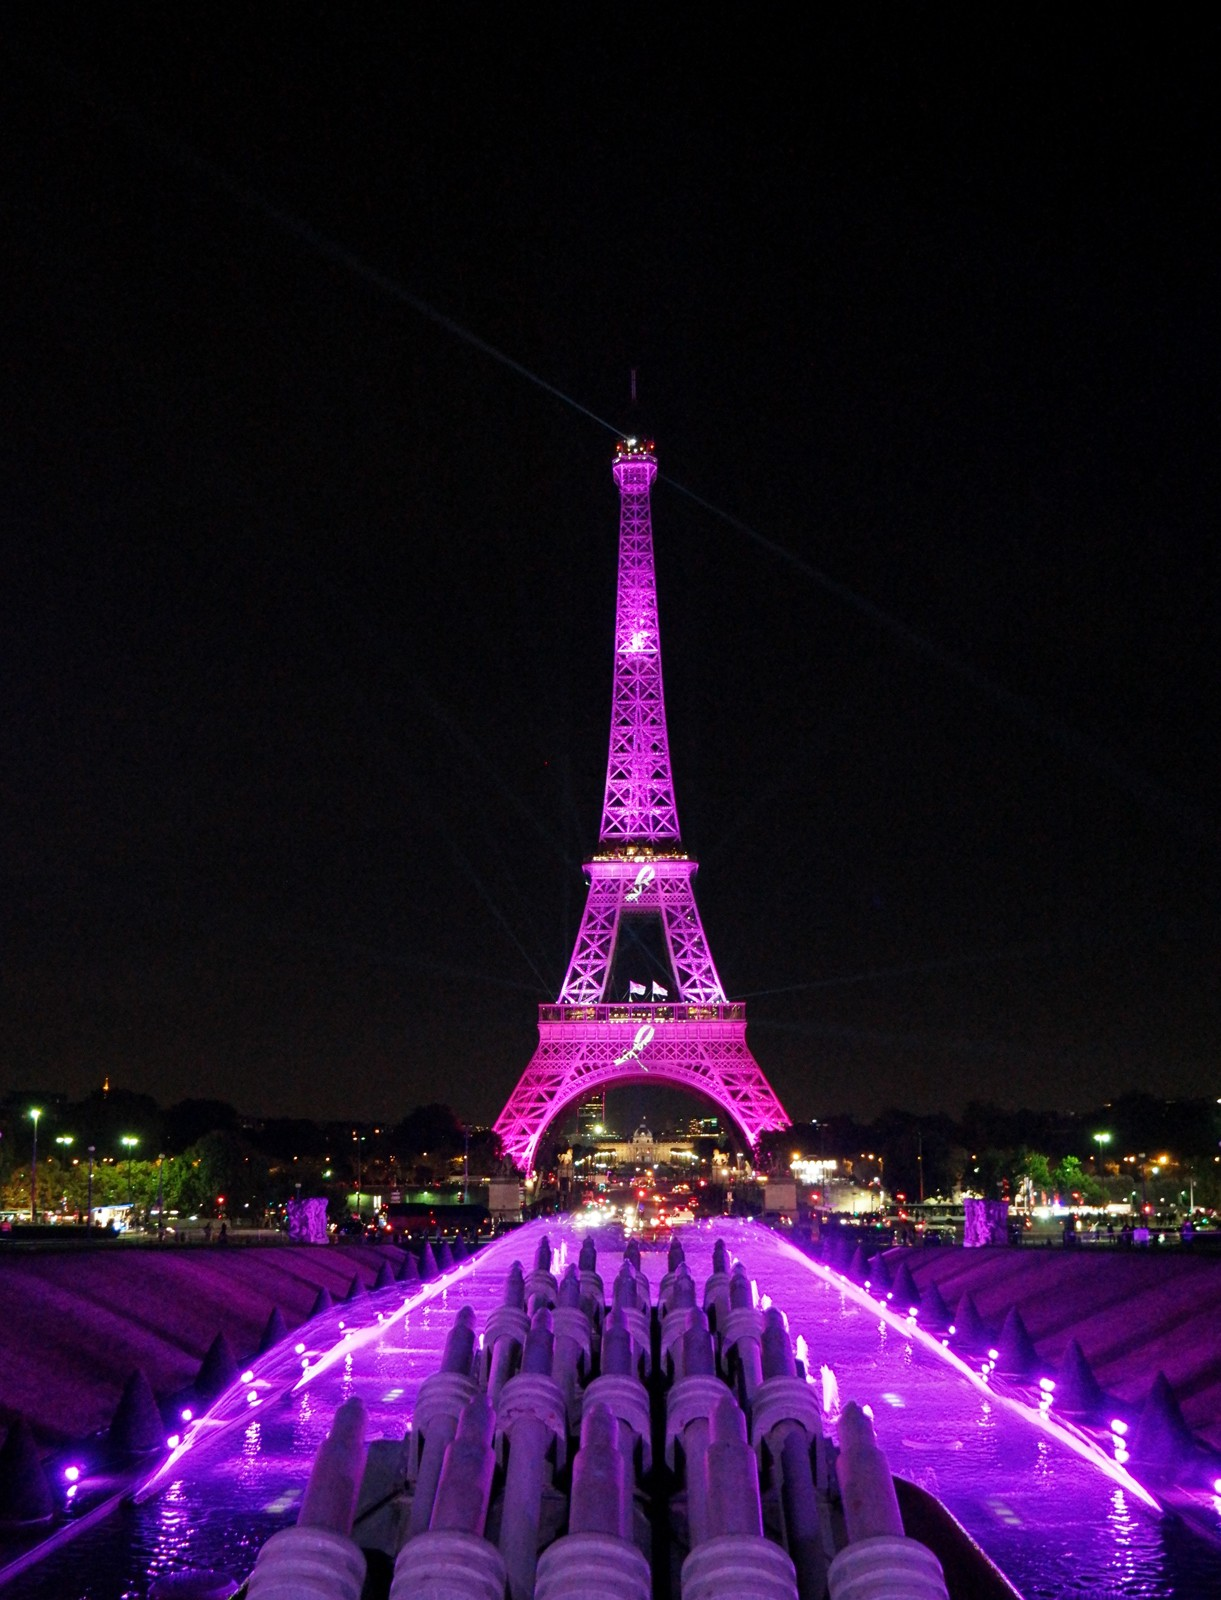 Illumination Tour Eiffel rose Pink Eiffel Tower pour Octobre Rose 2015 Ruban Rose soirée de lancement association Parlons-en cancer du sein photo usofparis blog